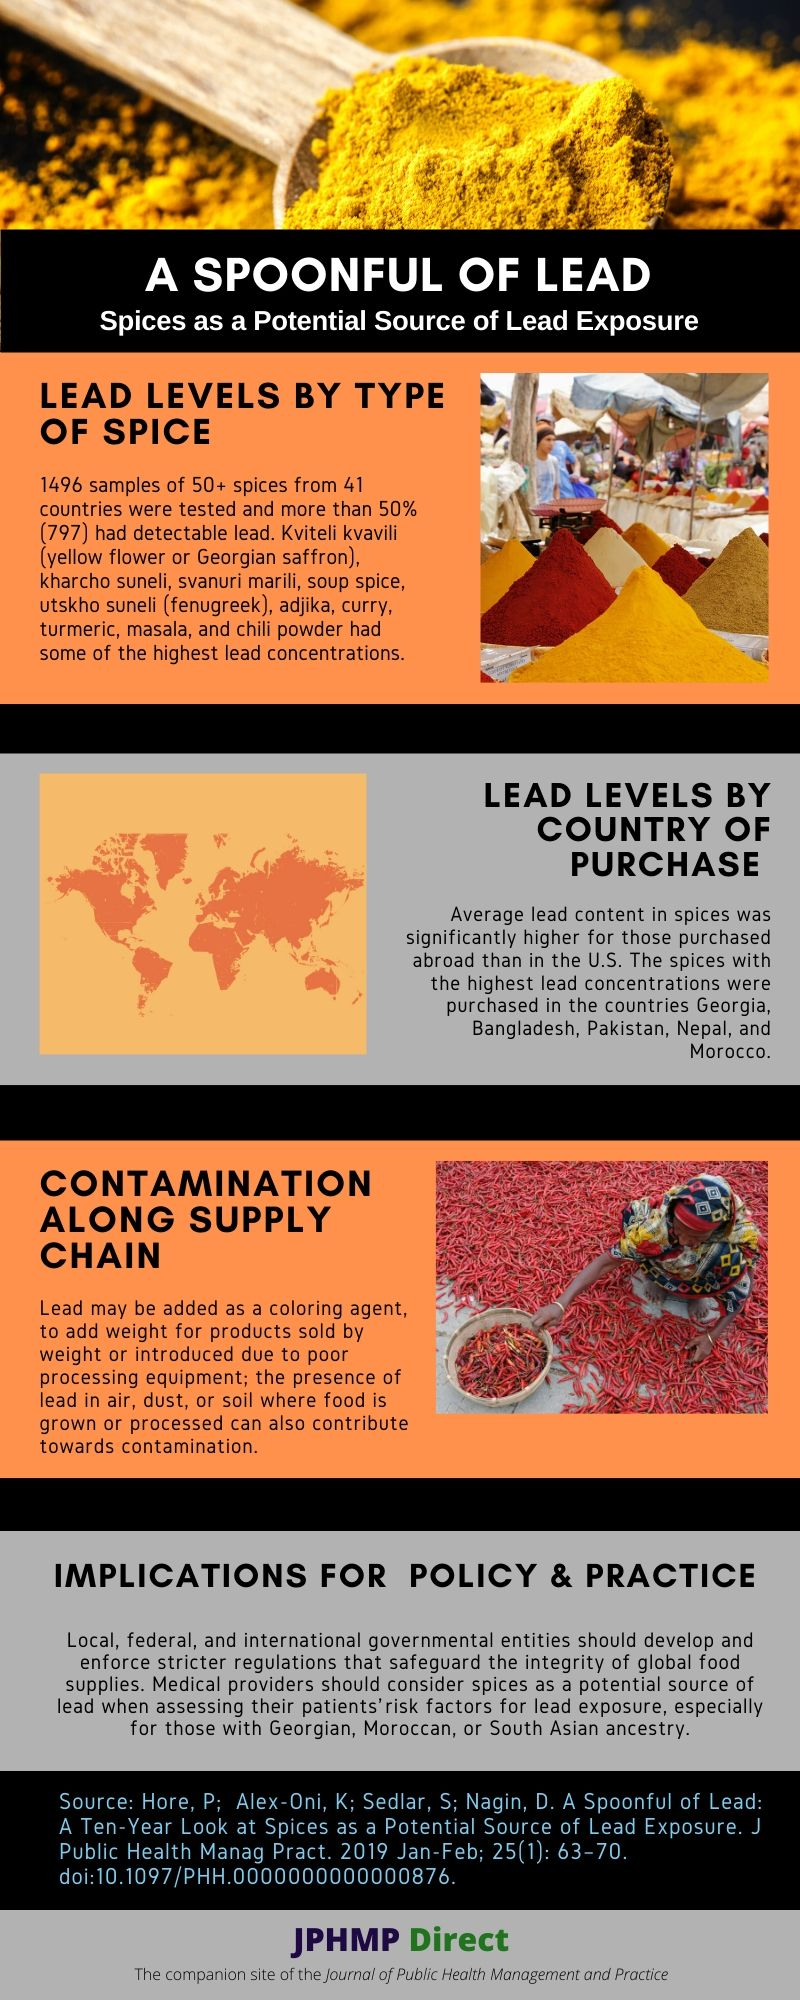 Spoonful of Lead Infographic